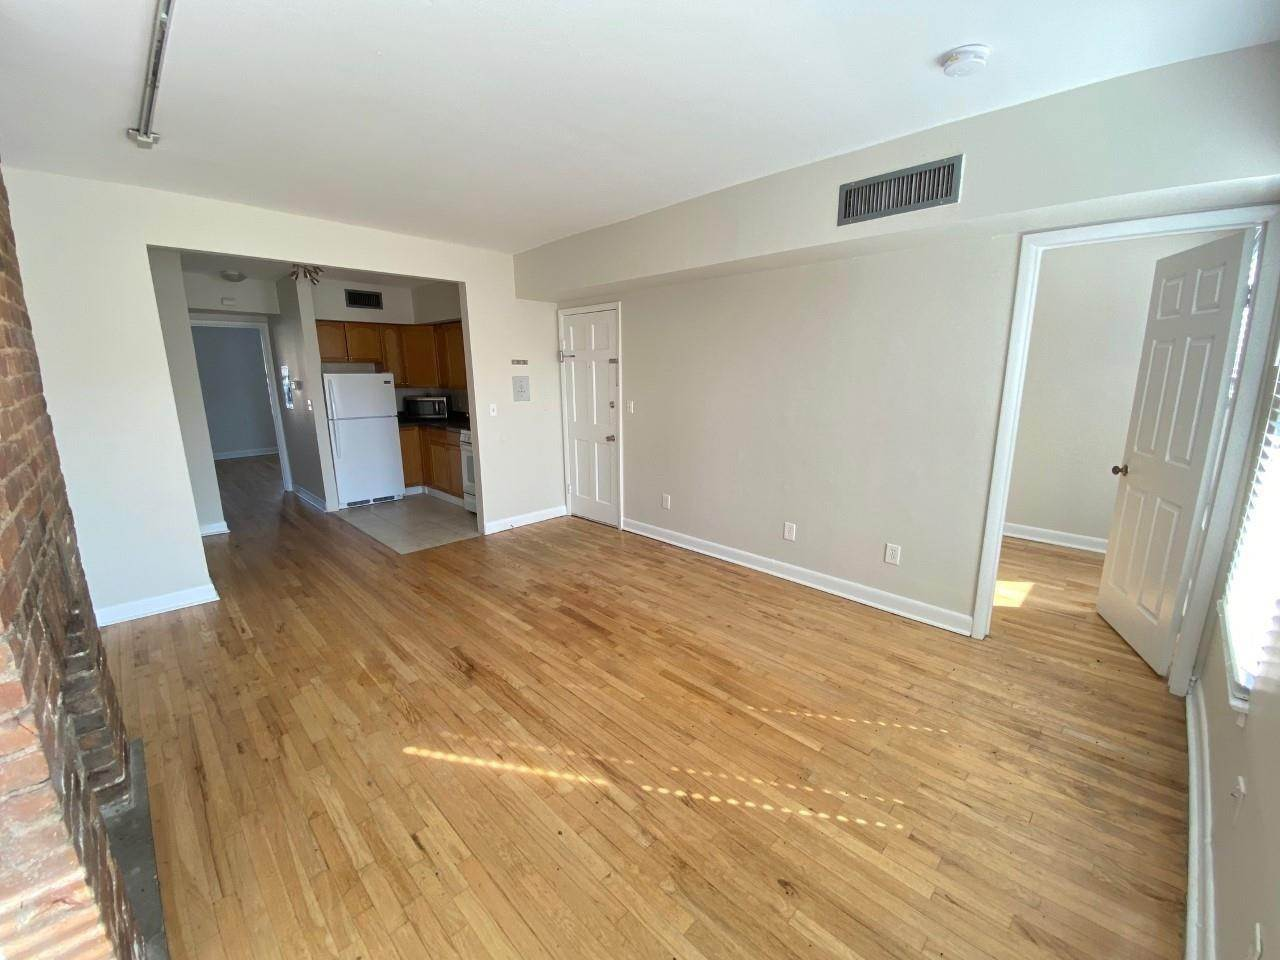 2. Condominiums for Rent at 276 1st Street #2 Jersey City, New Jersey 07302 United States